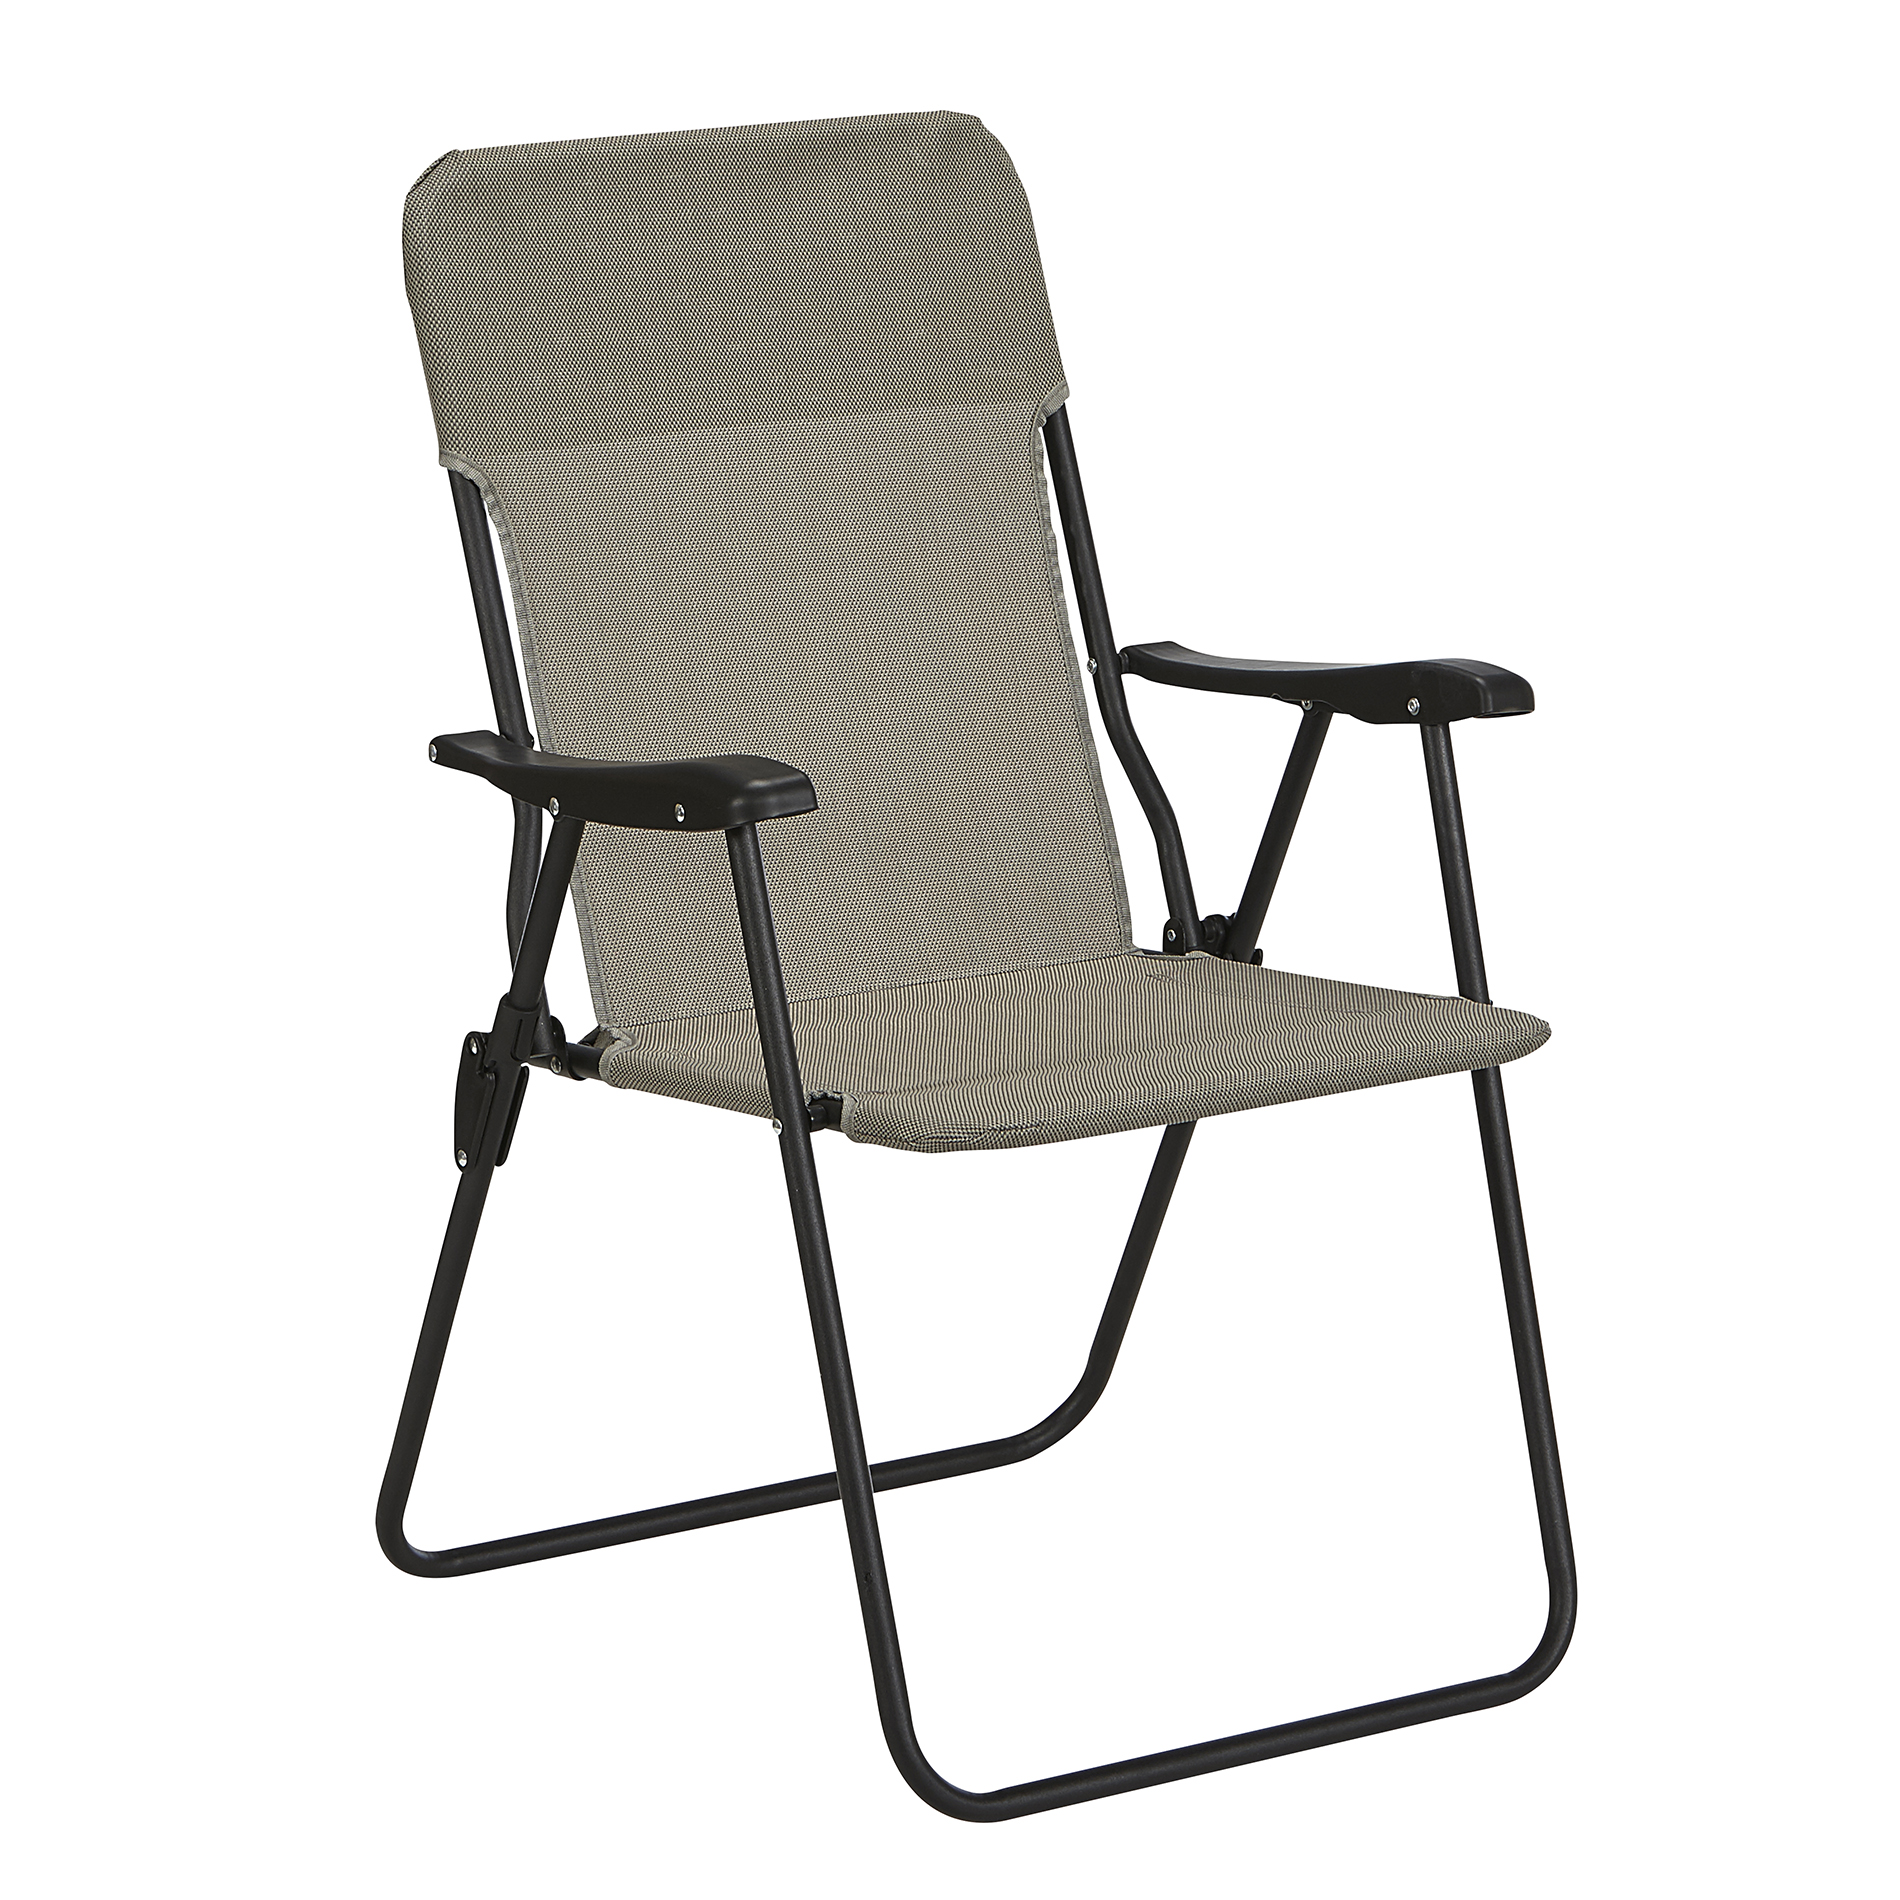 target sling chair tan hanging chairs for sale essential garden limited availability